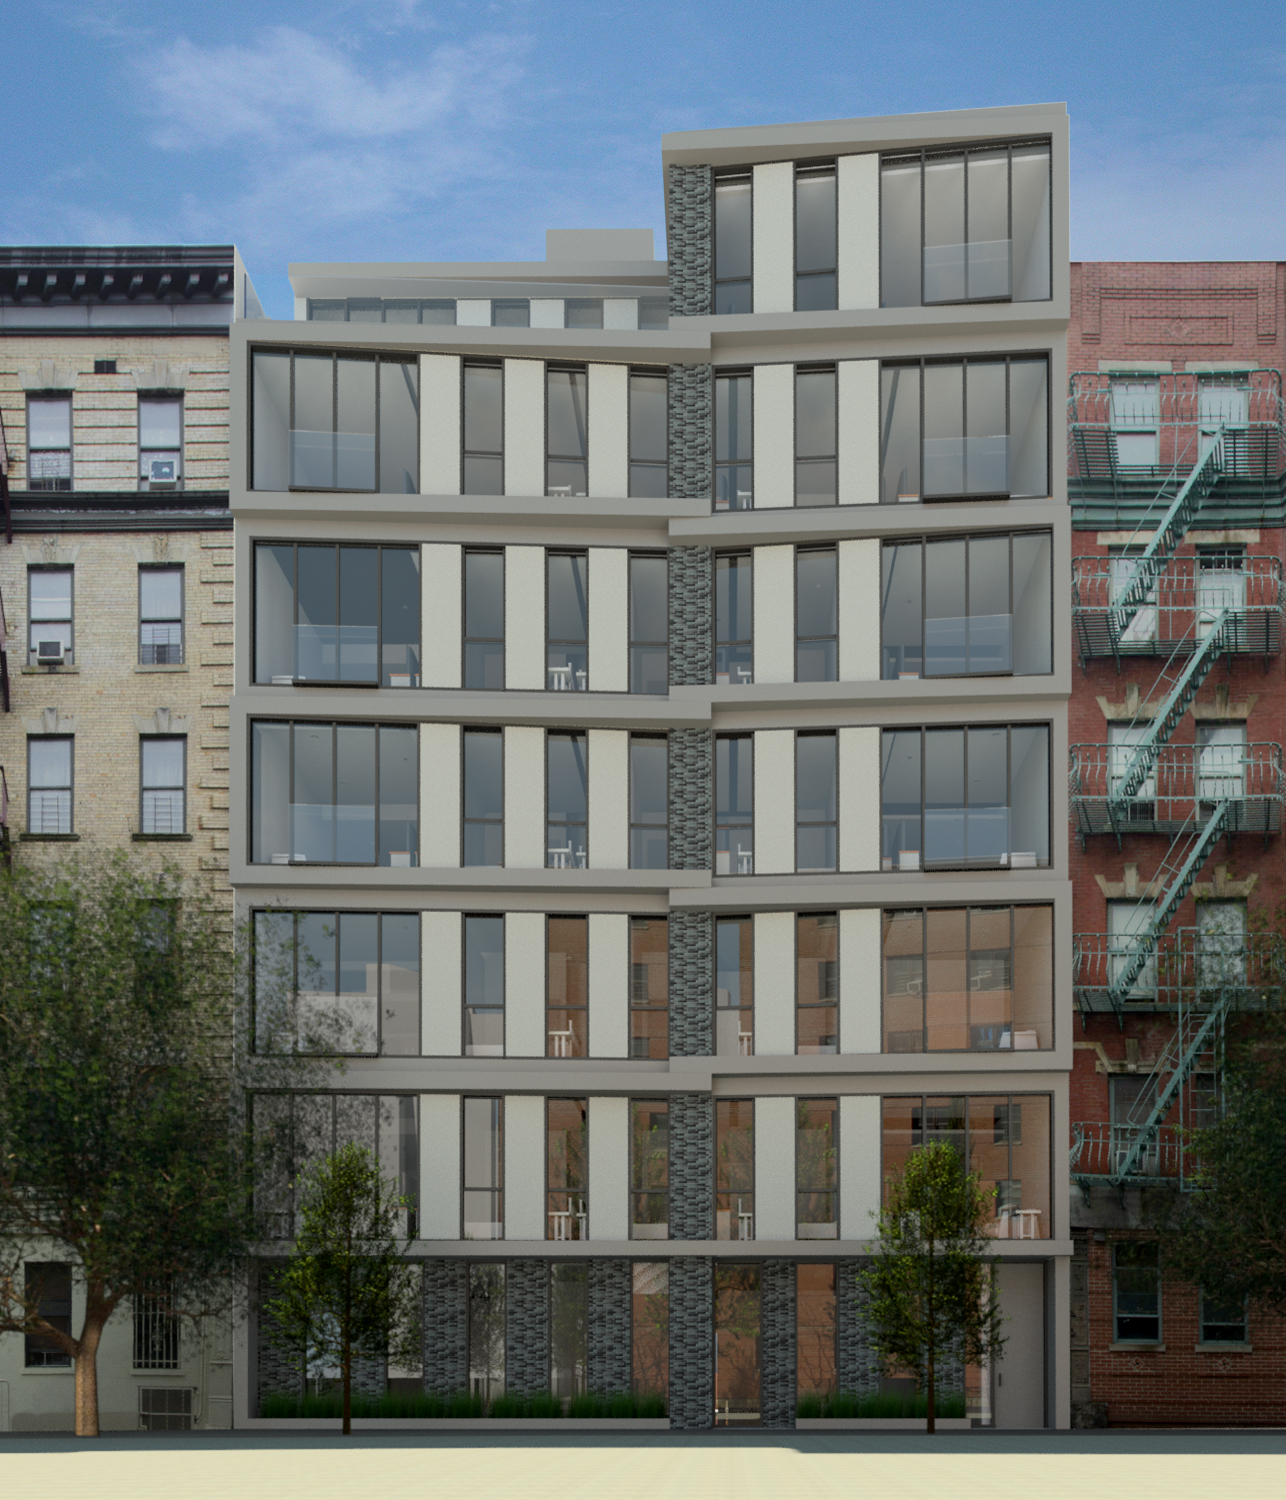 Harlem New York Apartments: New Renderings As 336 East 112th Street Nears Completion